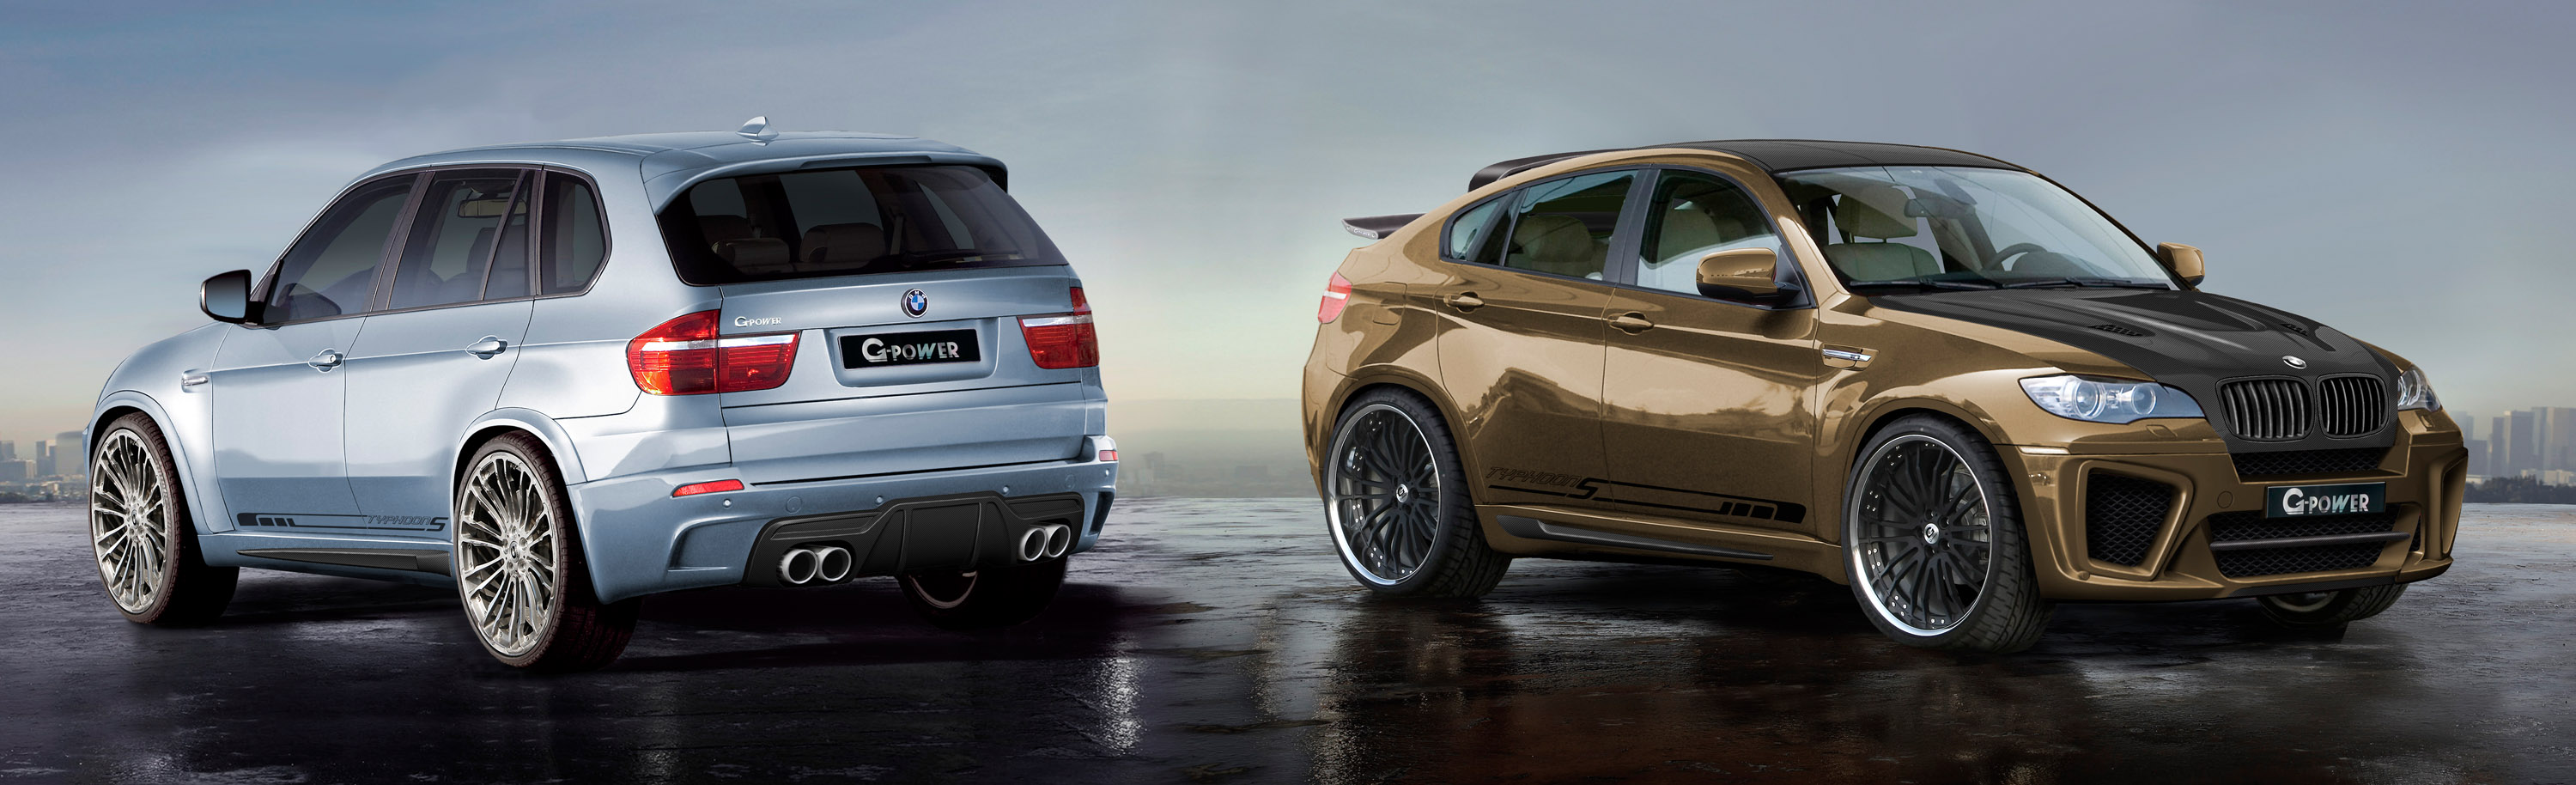 G Power Retrofits The Bmw X5 M And X6 M